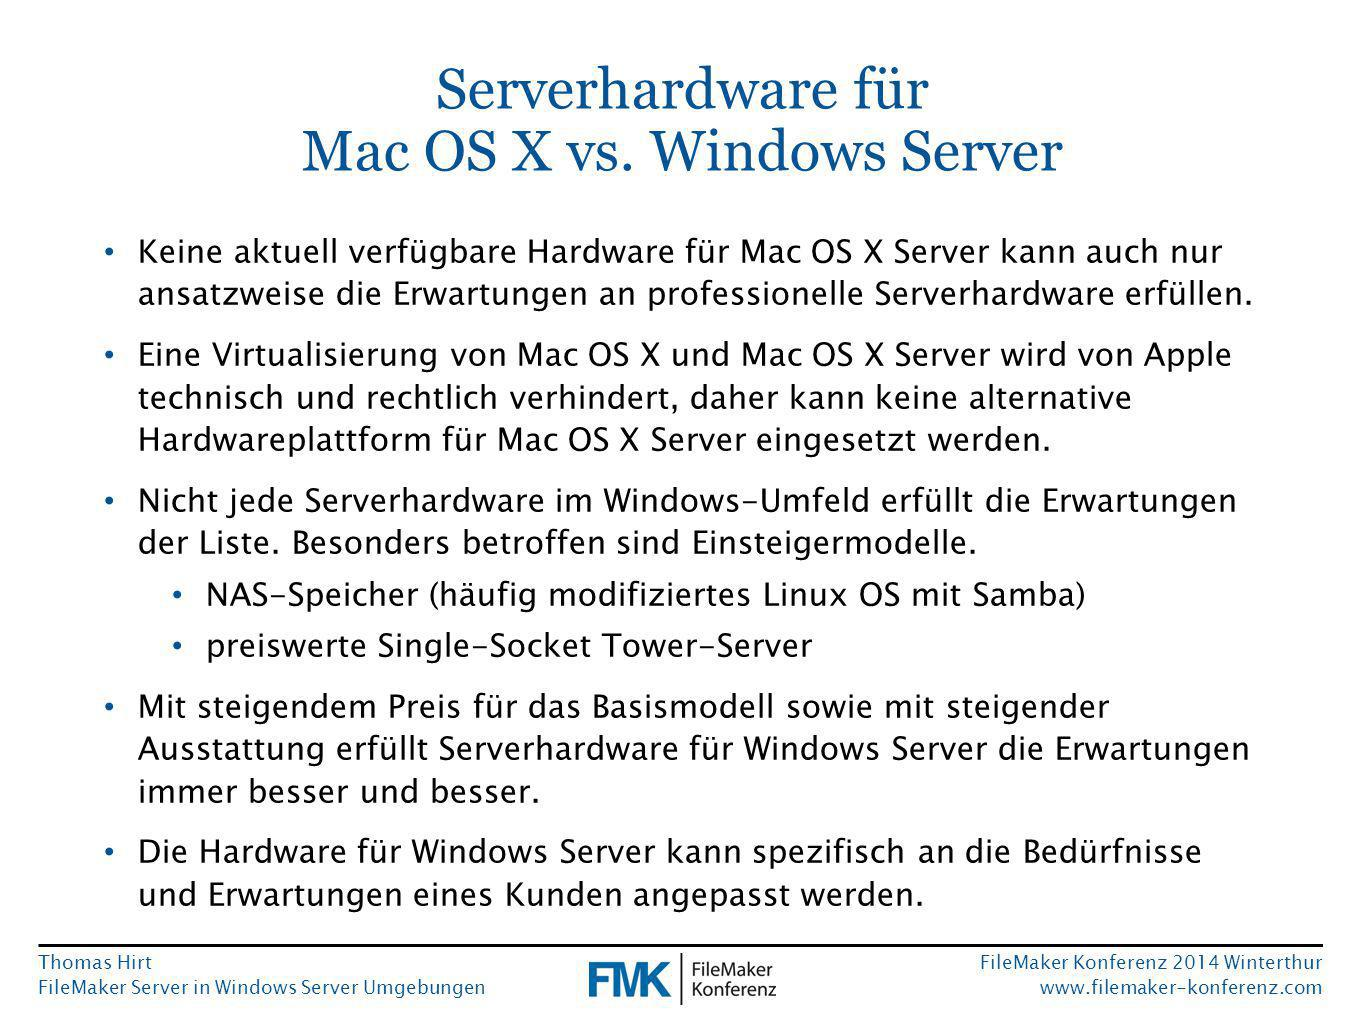 Thomas Hirt FileMaker Server in Windows Server Umgebungen FileMaker Konferenz 2014 Winterthur www.filemaker-konferenz.com Serverhardware für Mac OS X vs.